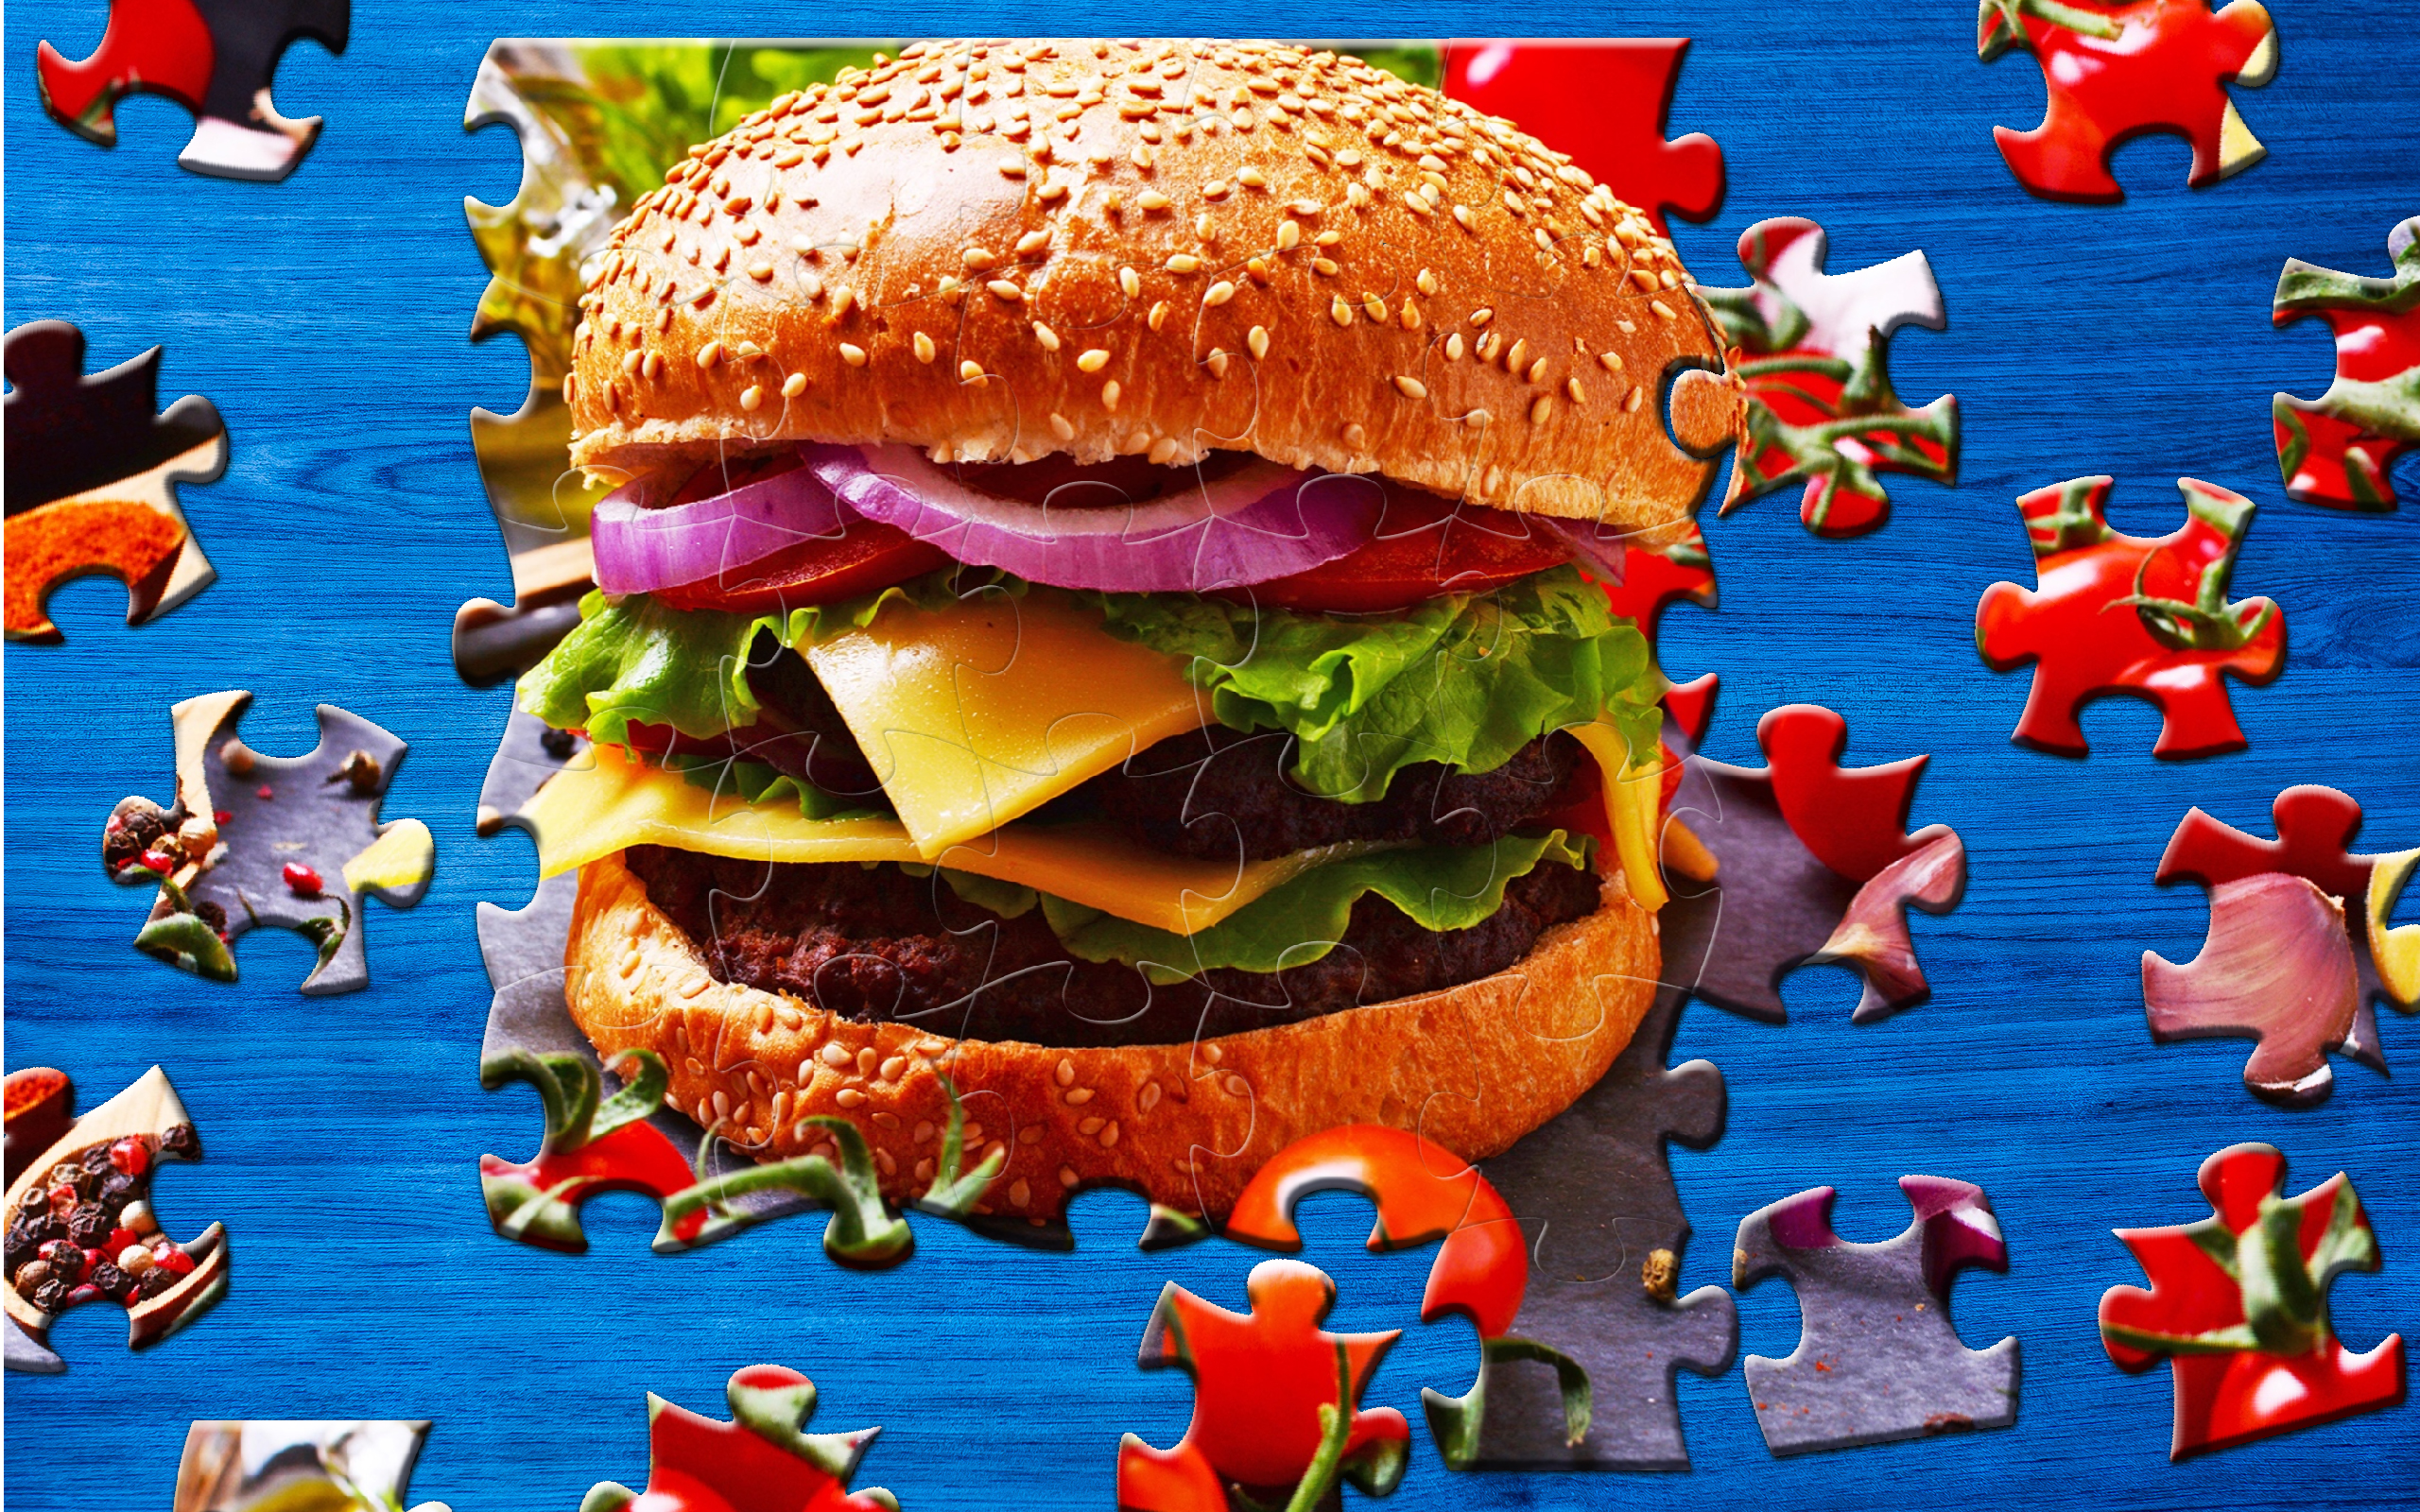 Cool Jigsaw Puzzles - Best free puzzle games: Amazon.co.uk ...